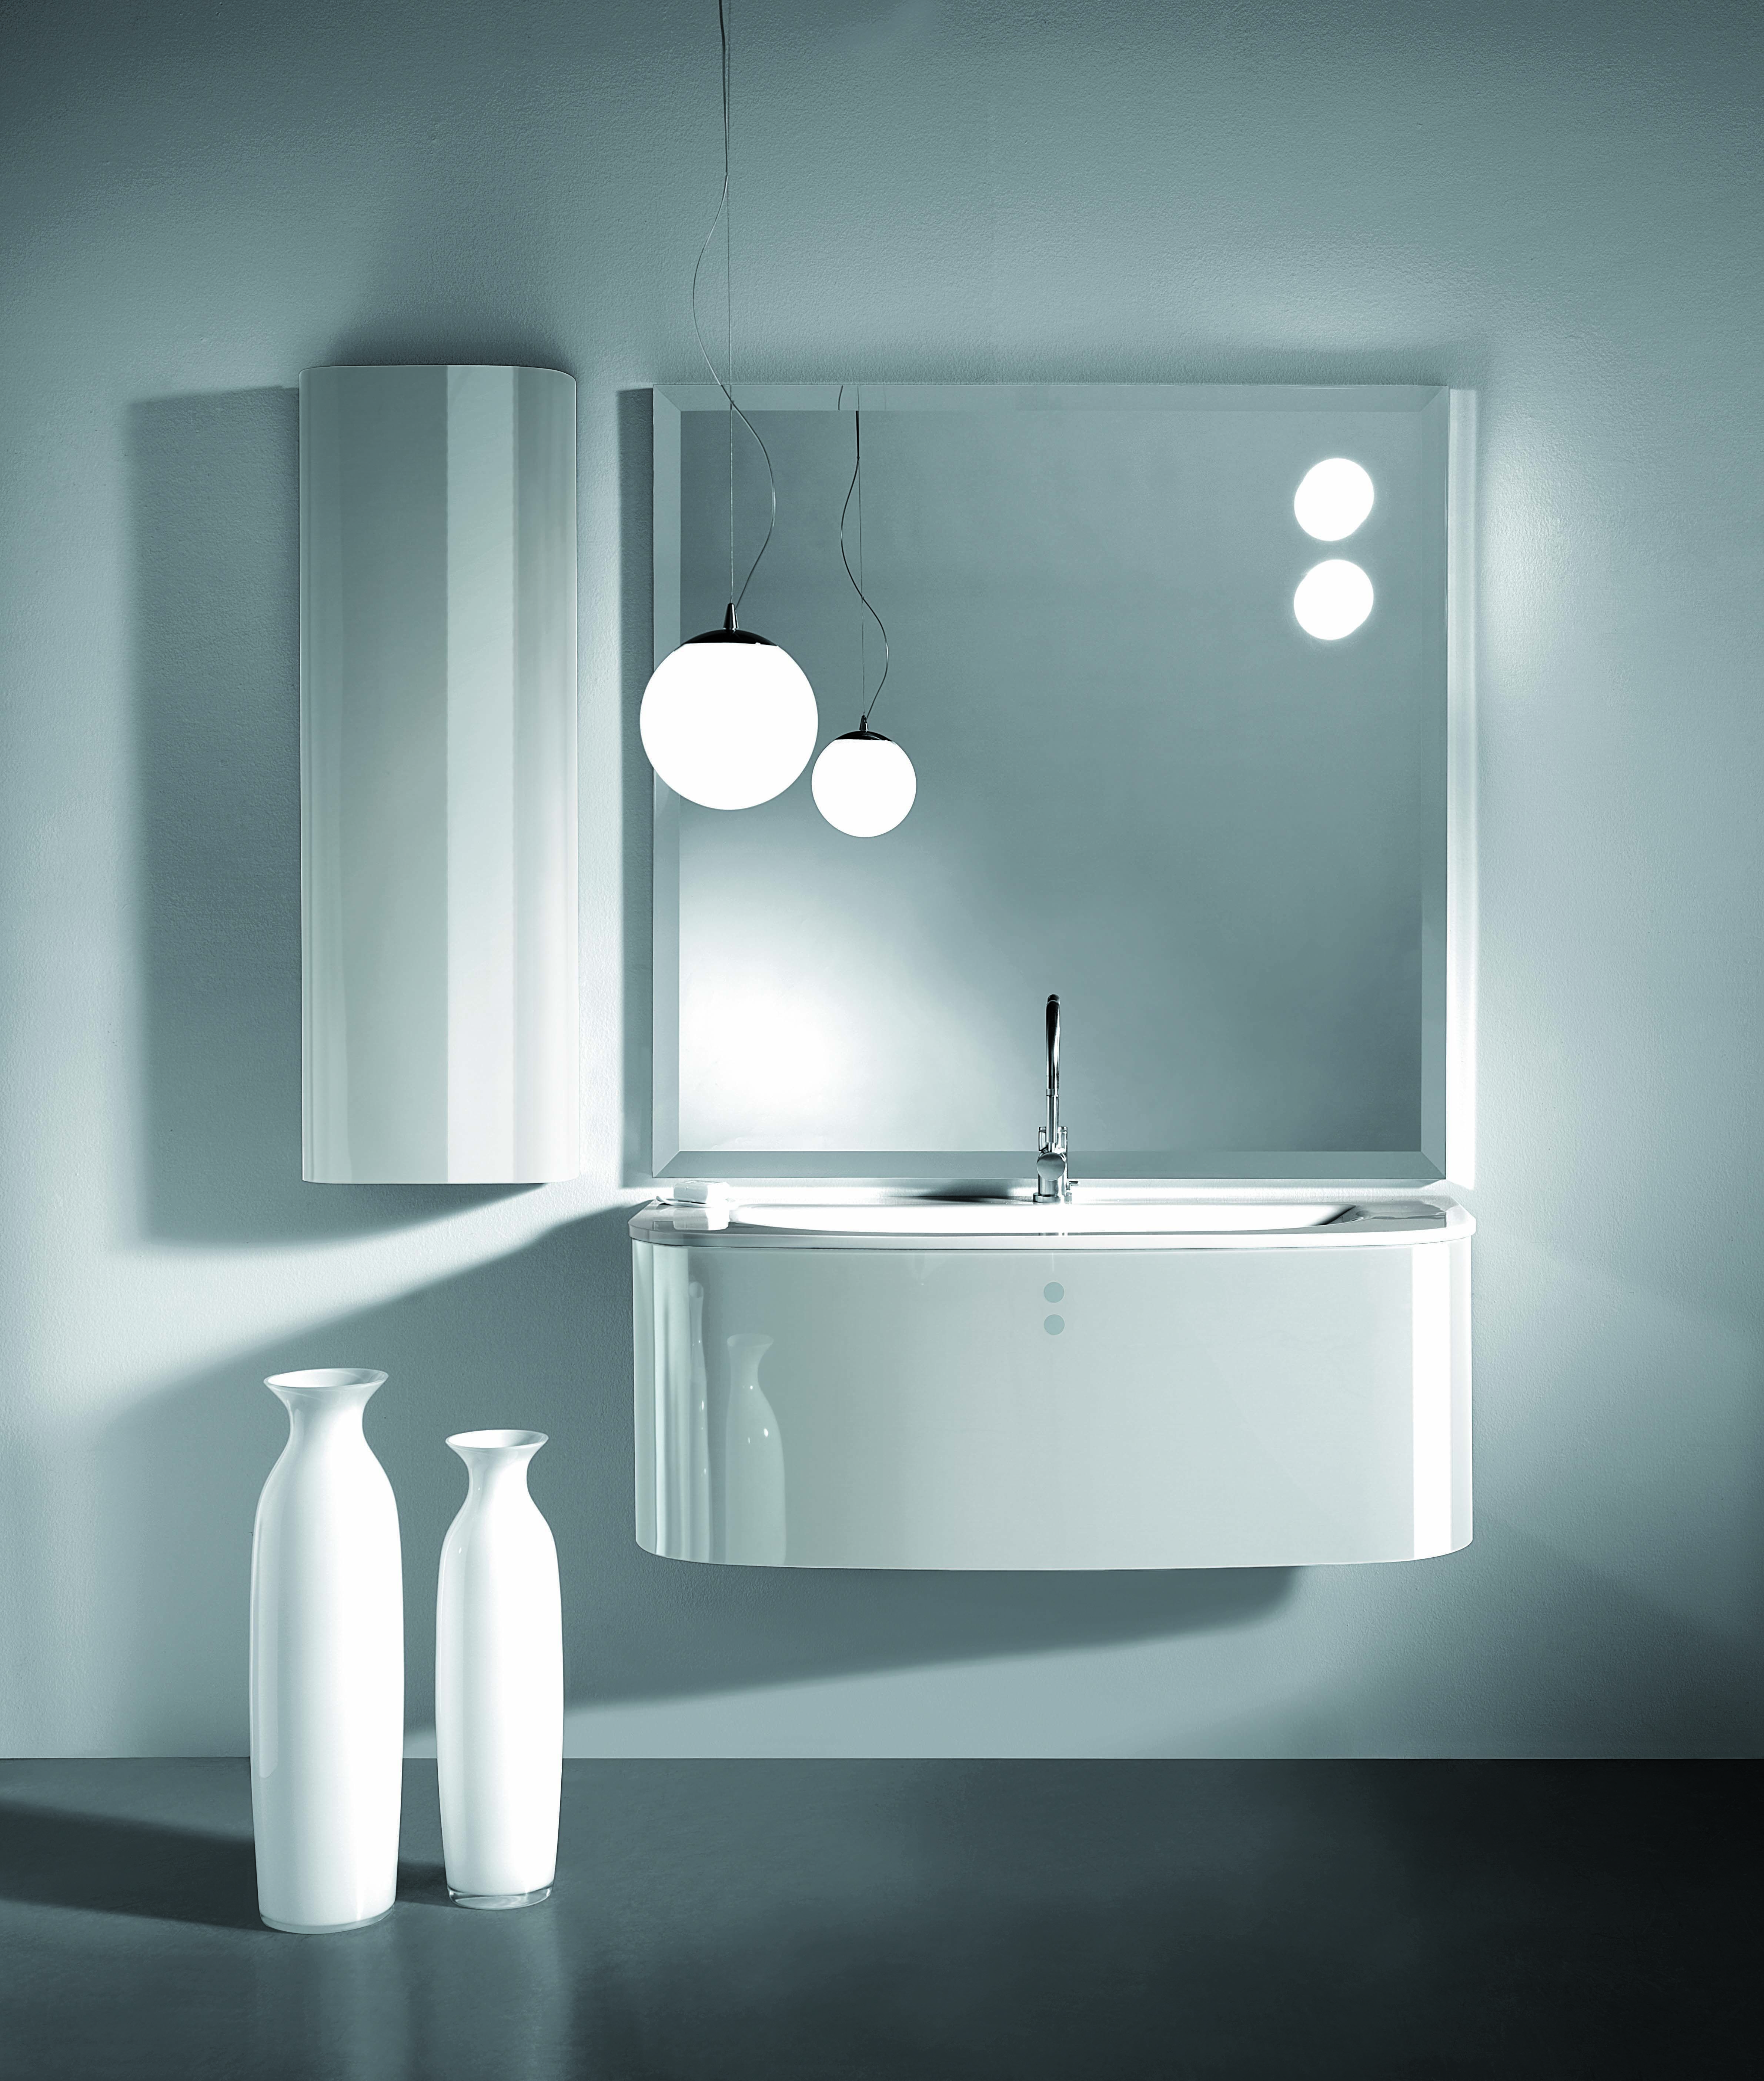 Kimono unit in white #cphart #bathrooms | Bathroom | Pinterest ...